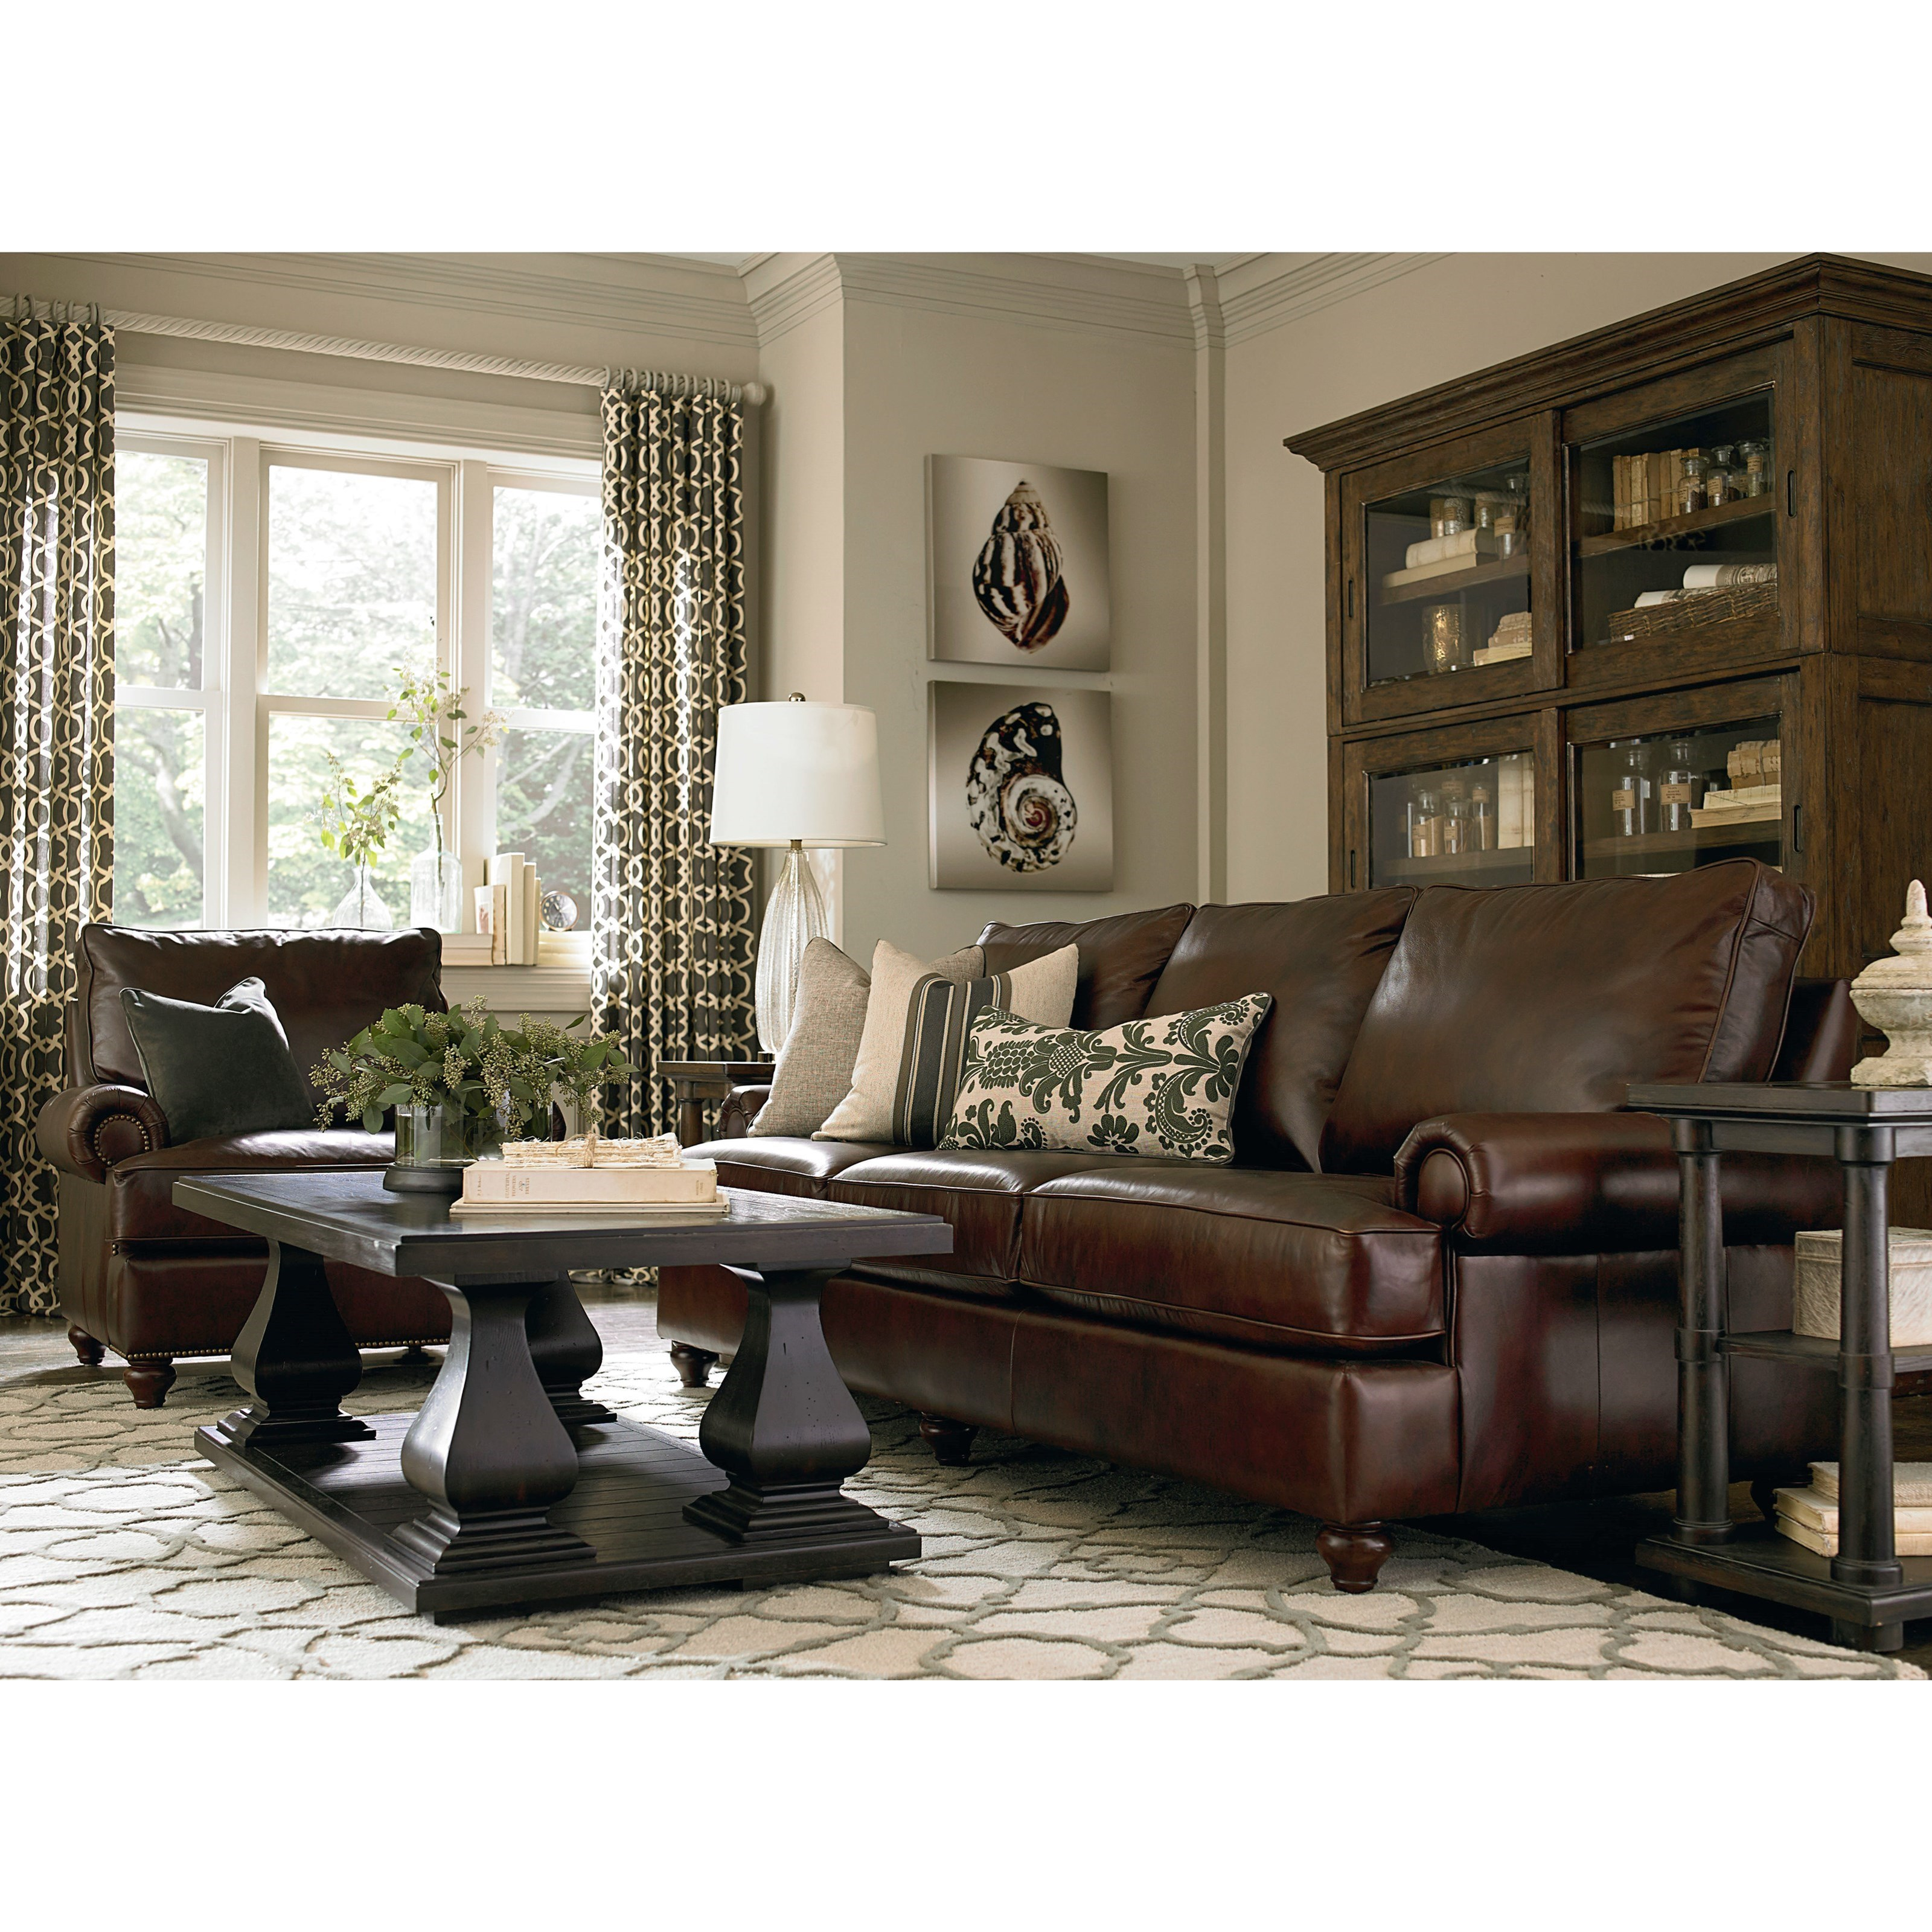 Bassett Montague 3103-82L Casual Sofa With Rolled Arms